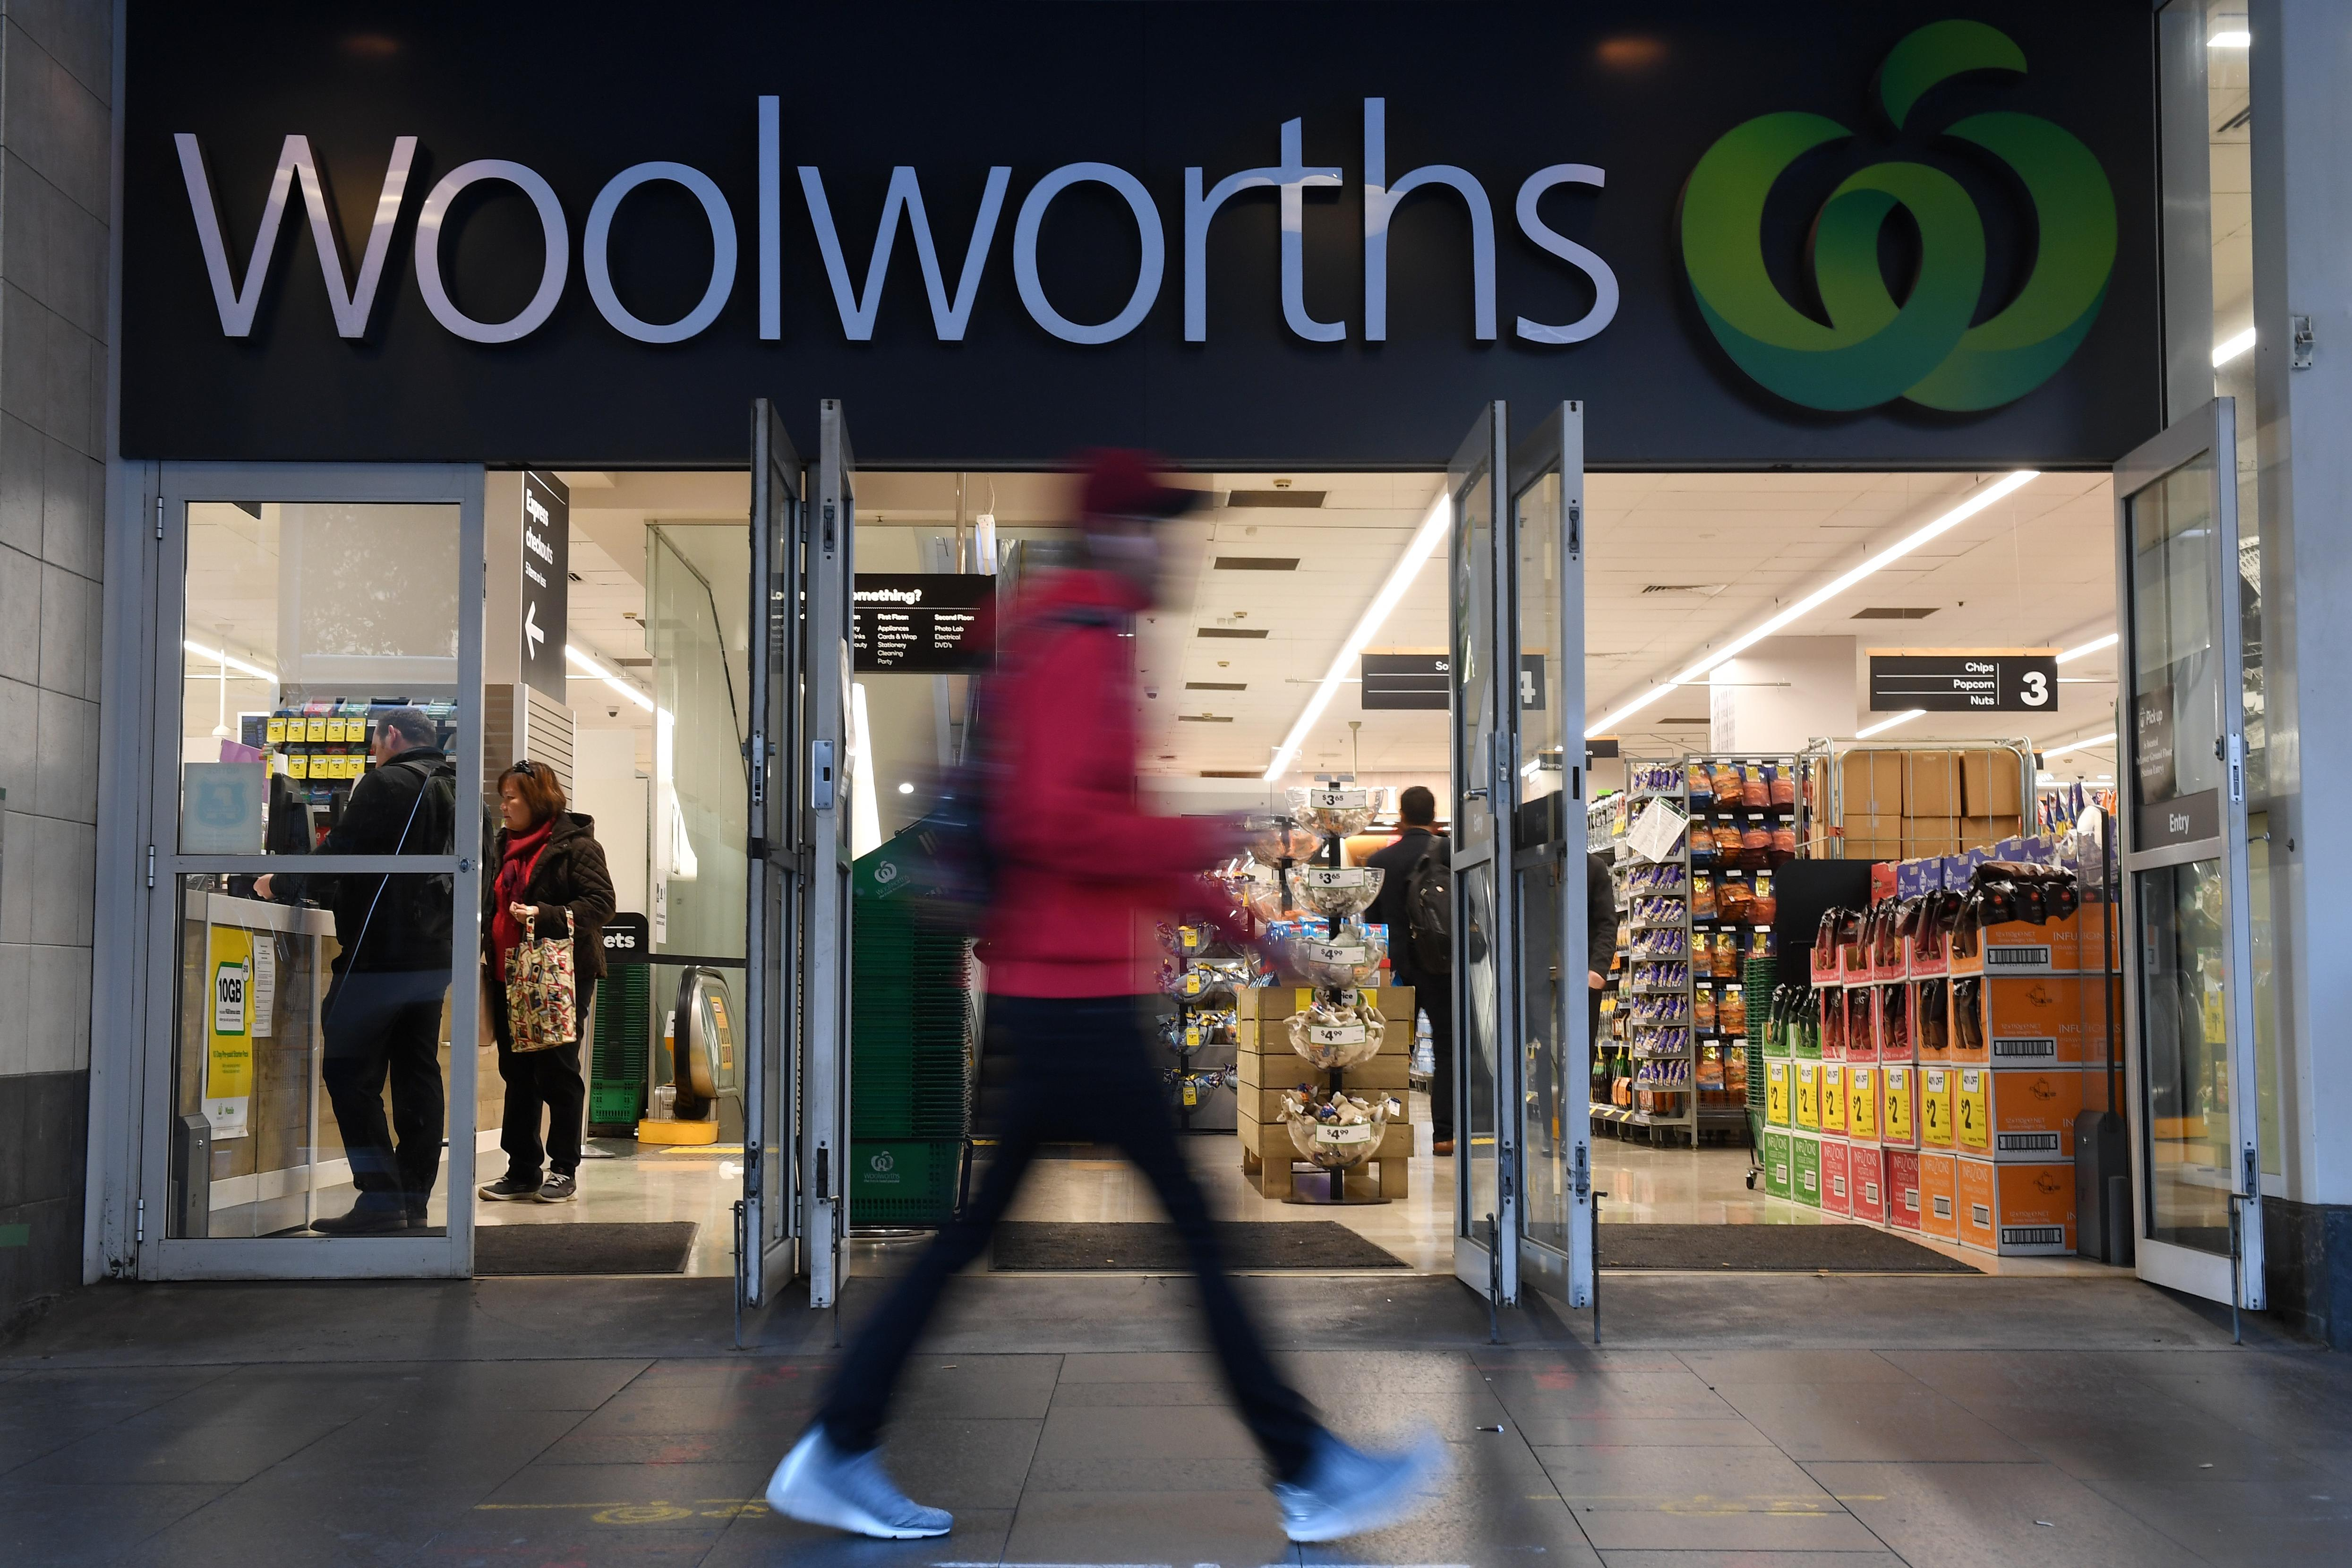 Popular cake mix sold at Woolworths recalled